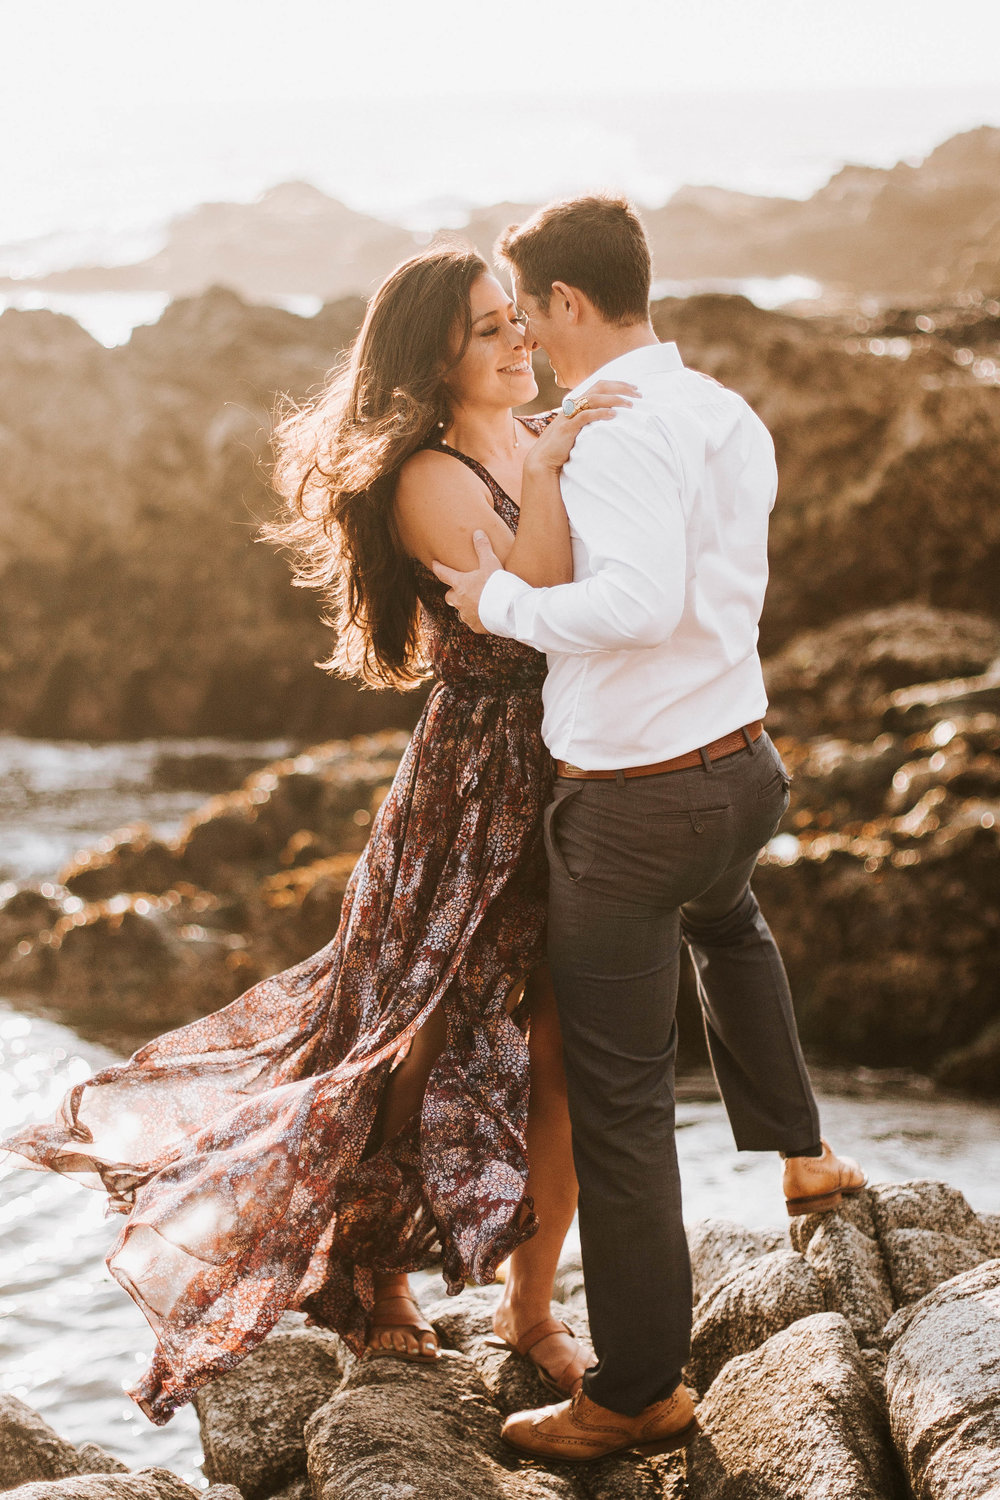 nicole-daacke-photography-big-sur-california-coast-adventure-engagement-photos-adventurous-elopement-intimate-wedding-photographer-golden-coastal-cali-engagement-session-14.jpg